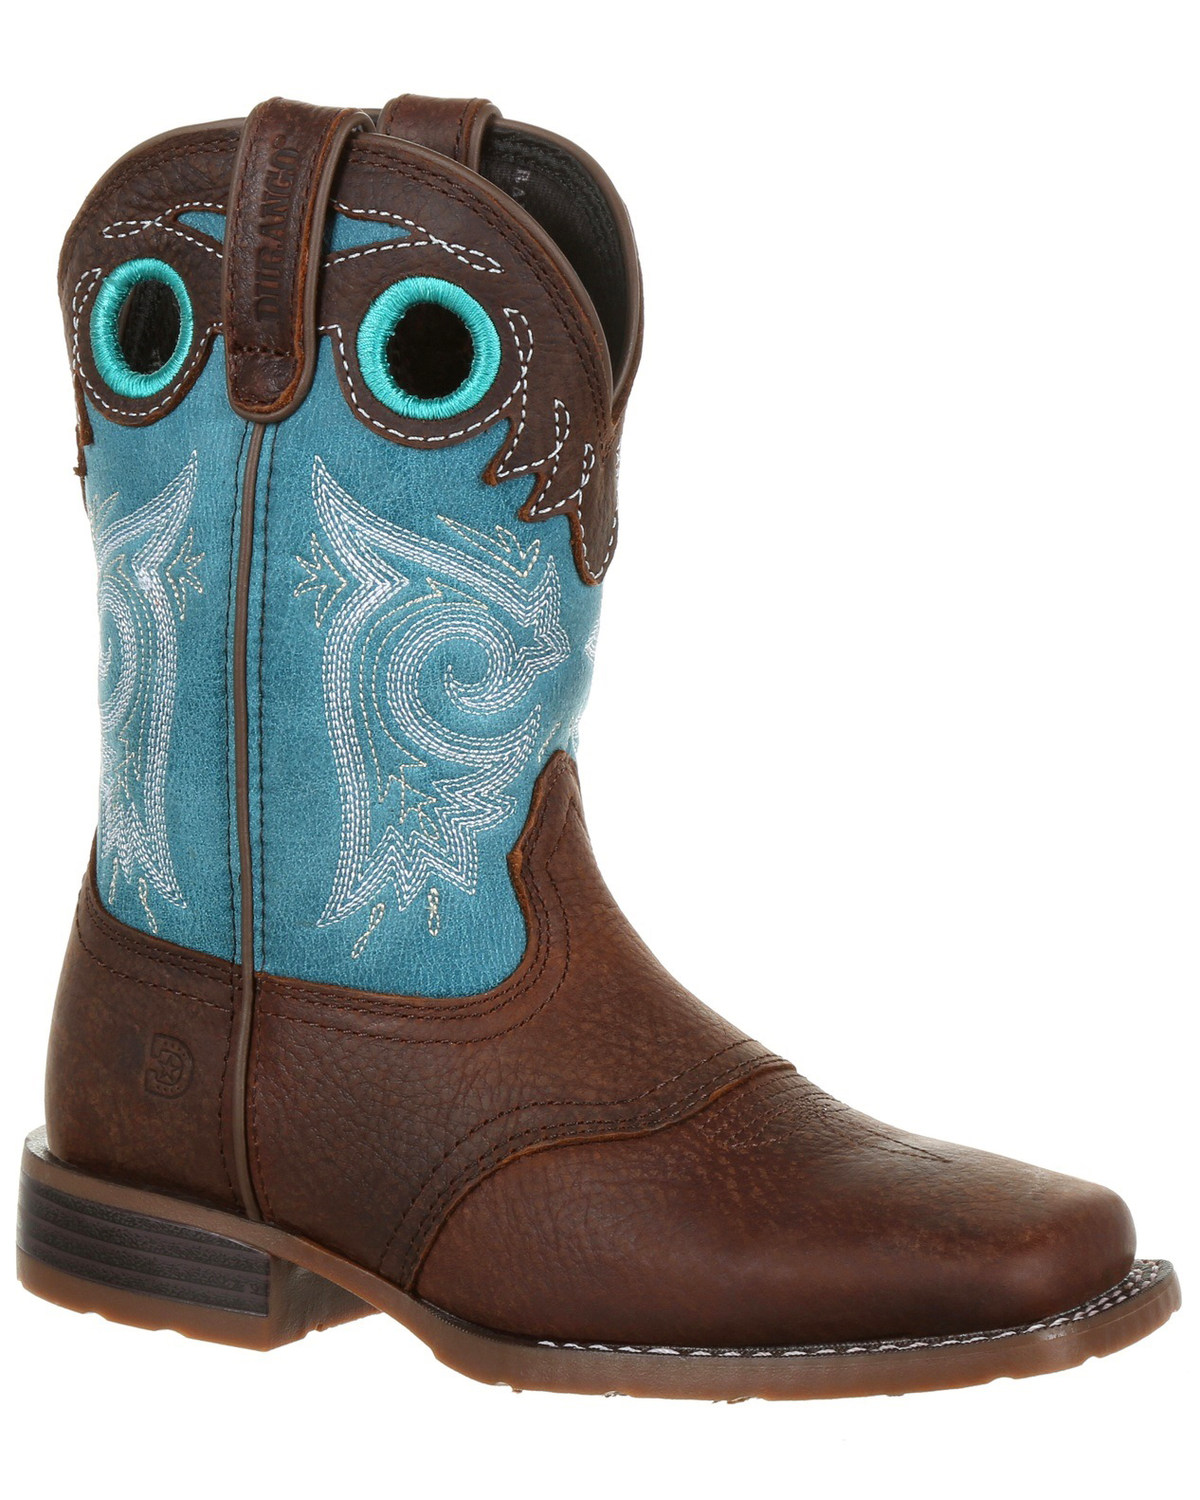 6fe2de9b6326 Durango Boys  Lil  Mustang Western Saddle Boots - Wide Square Toe ...